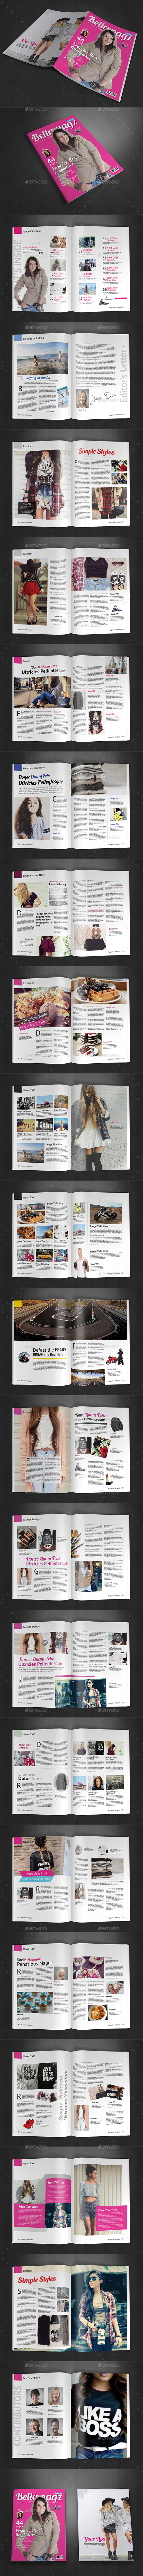 GraphicRiver A4 Magazine Template Vol.13 11410764